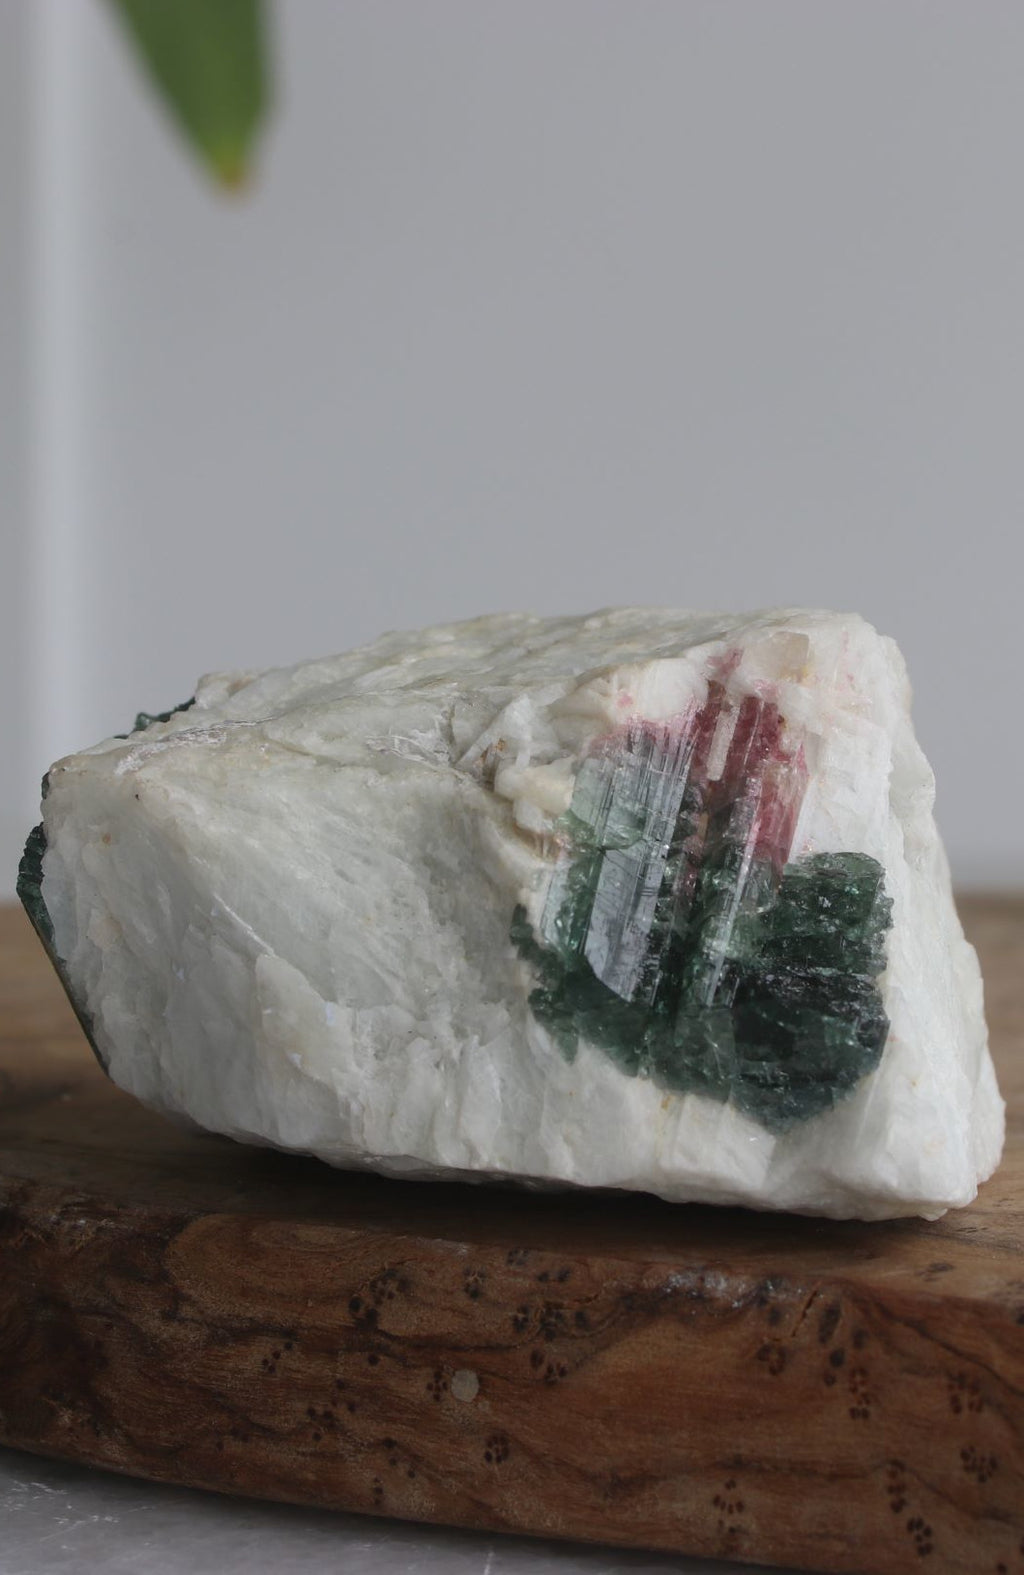 Watermelon Tourmaline Specimen